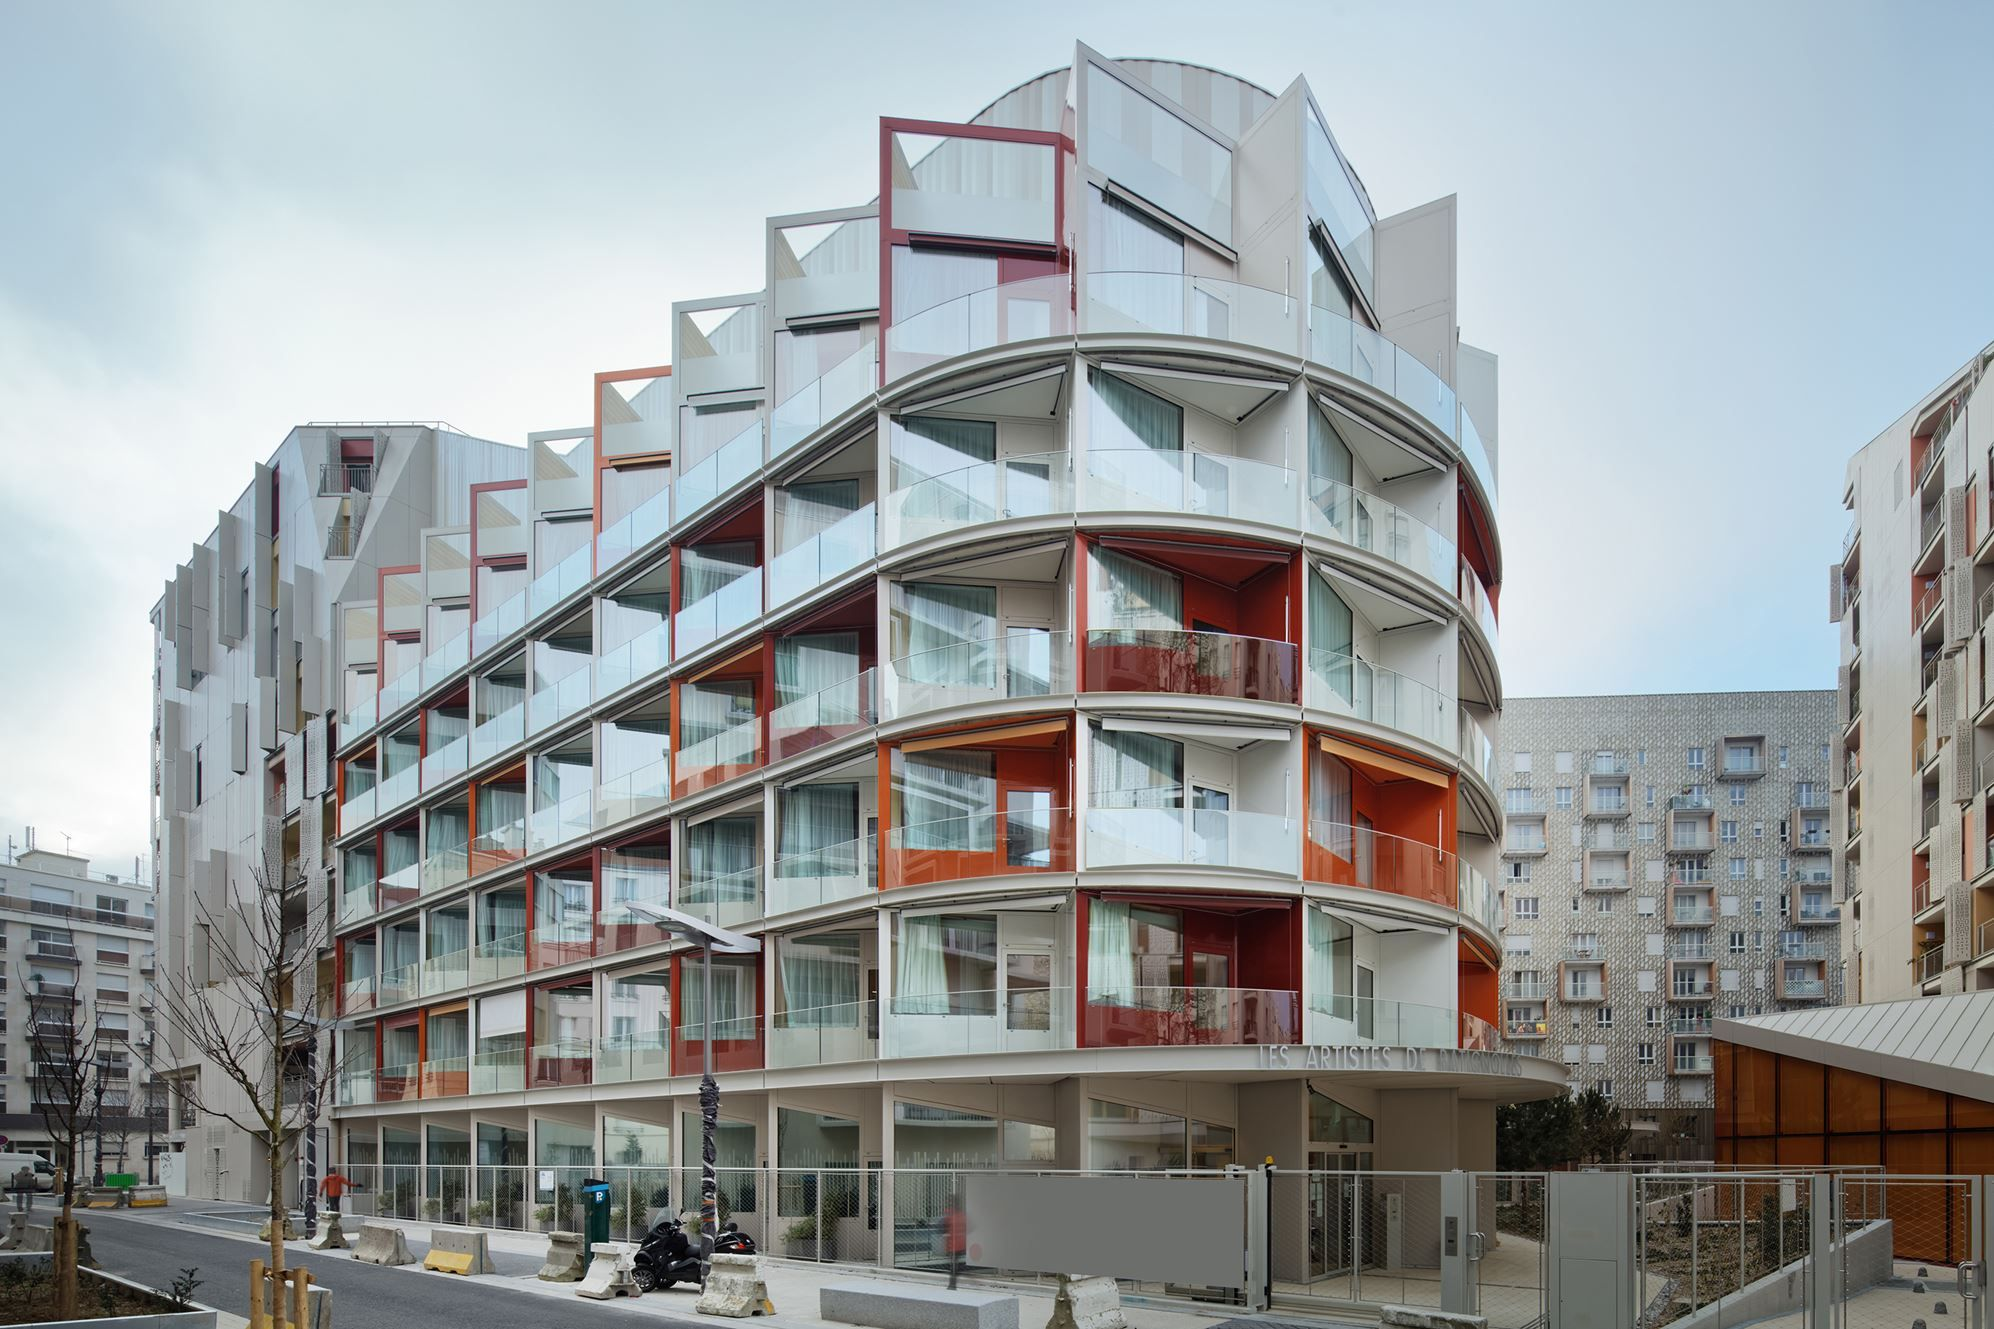 Nursing home clichy batignolles ecodistrict in paris picture gallery also rh pinterest